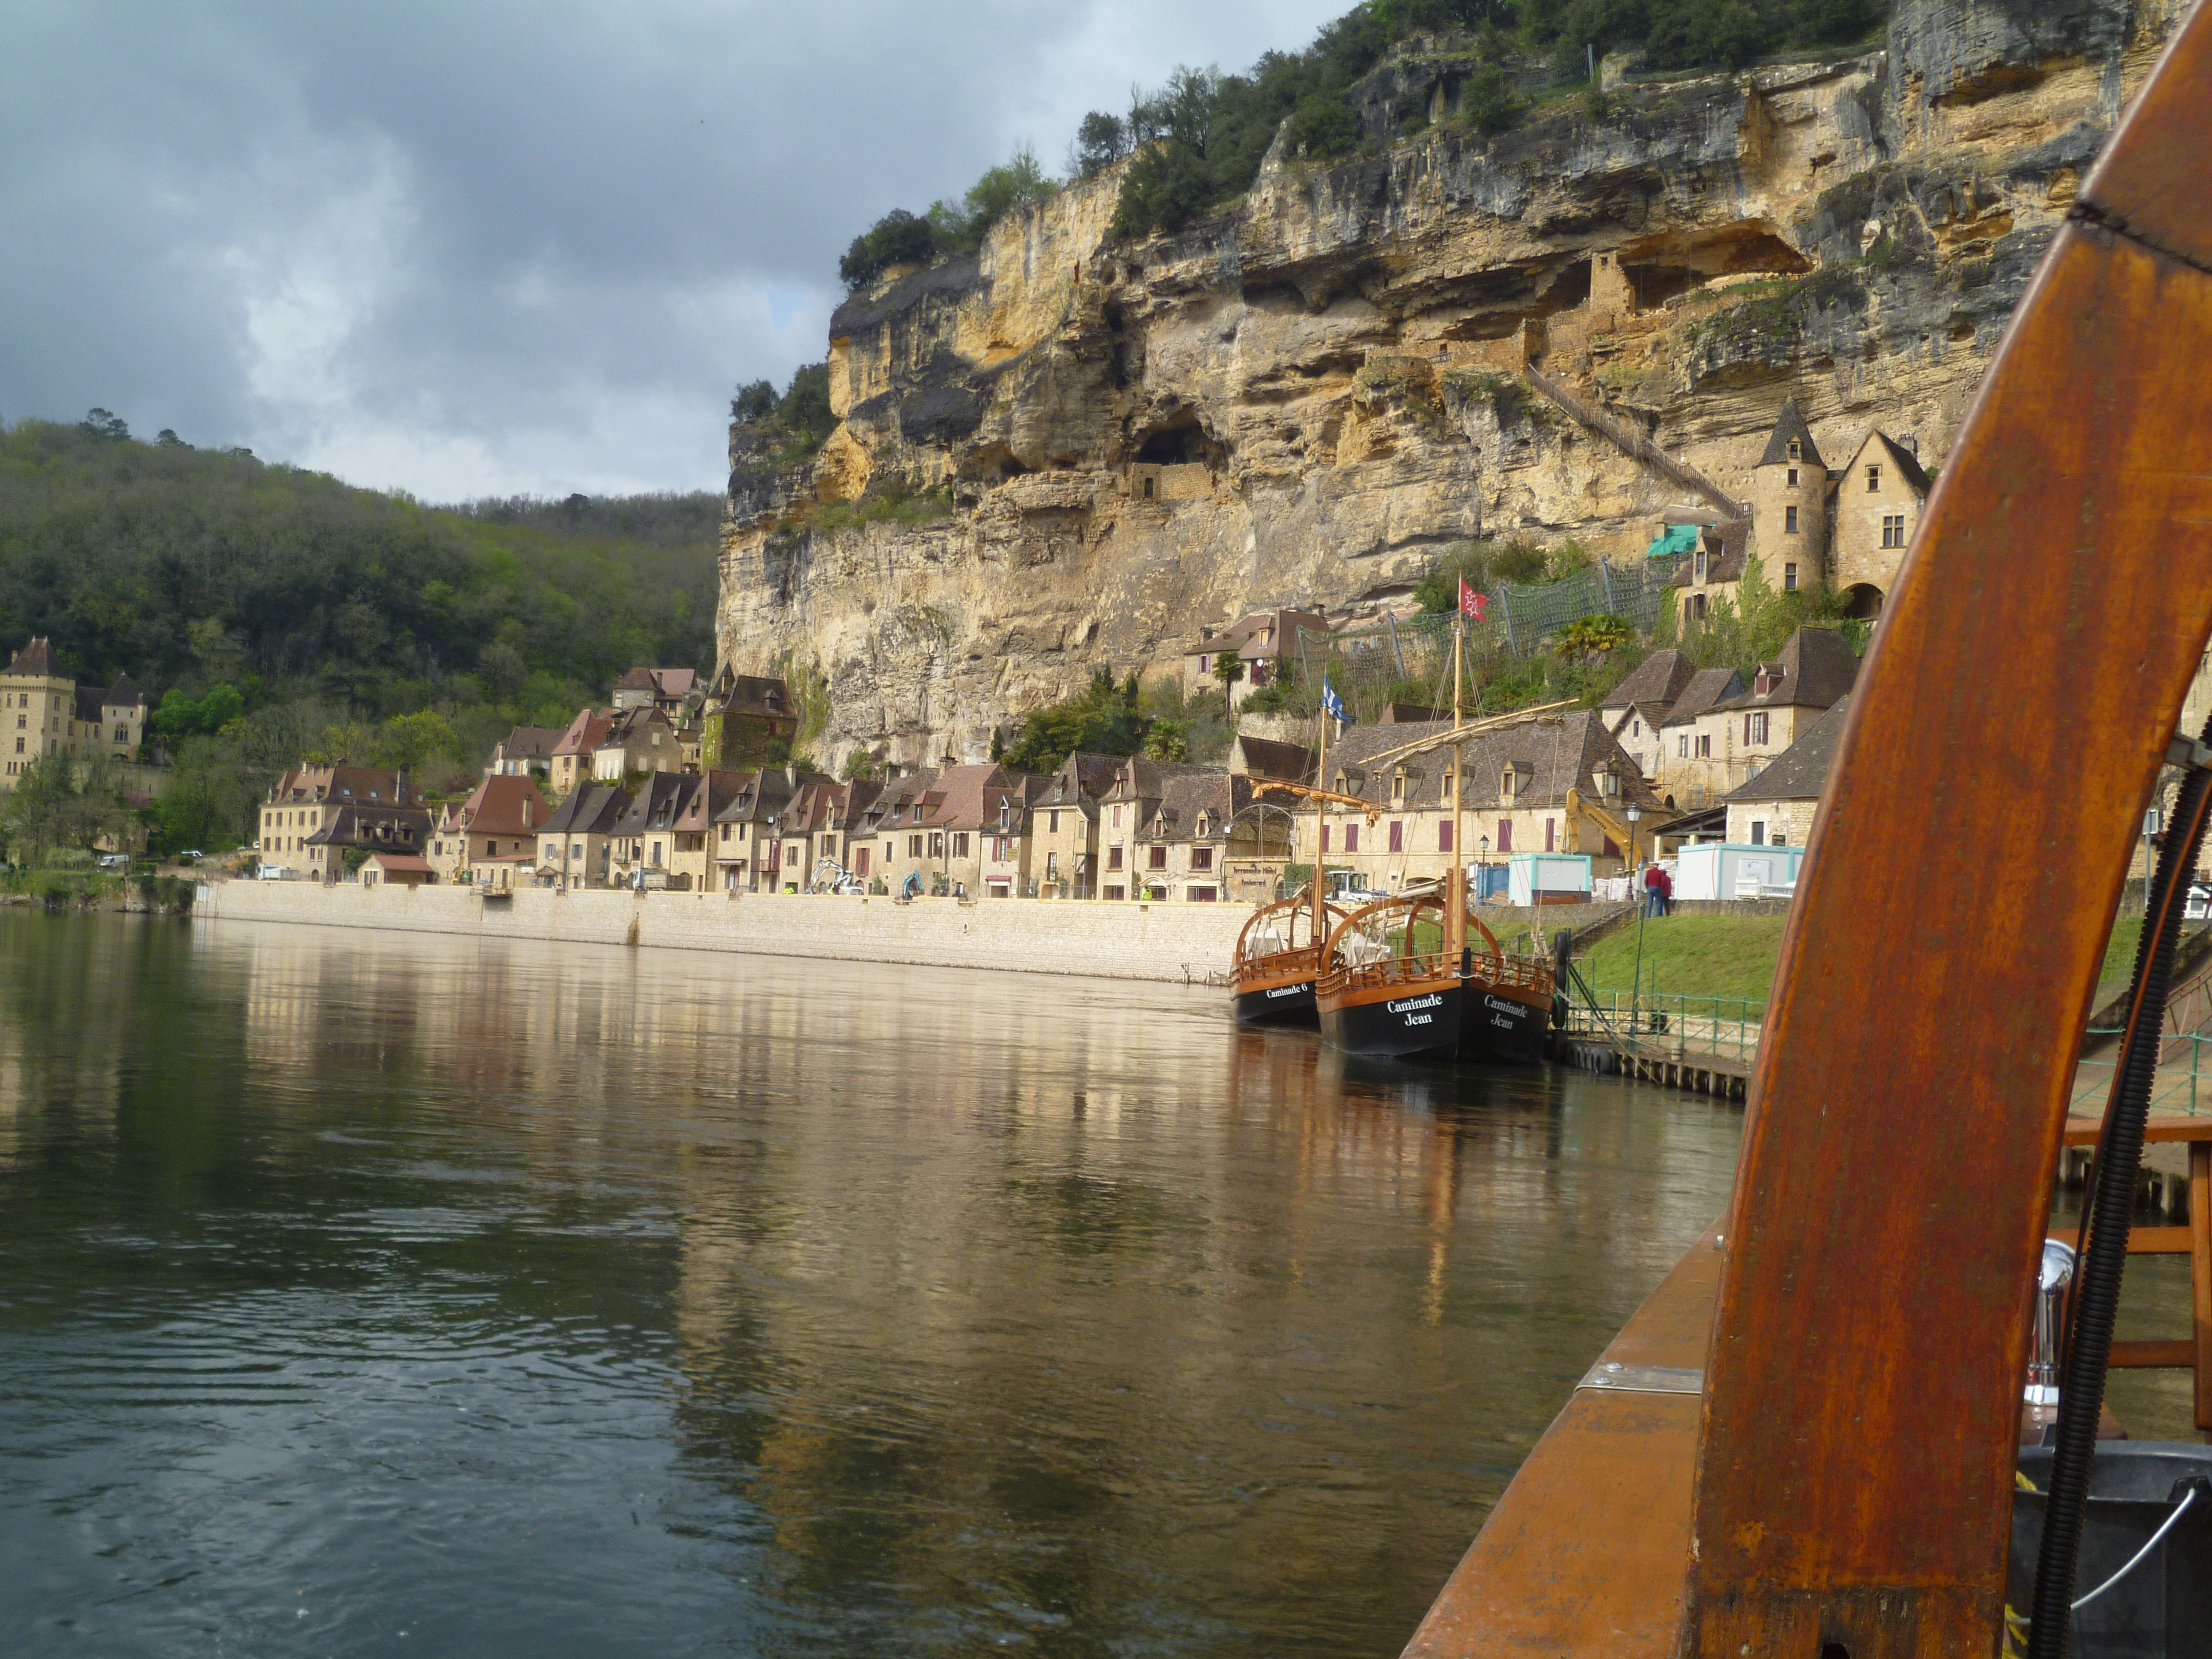 A 4 day tour of the Dordogne River Valley and its Treasures